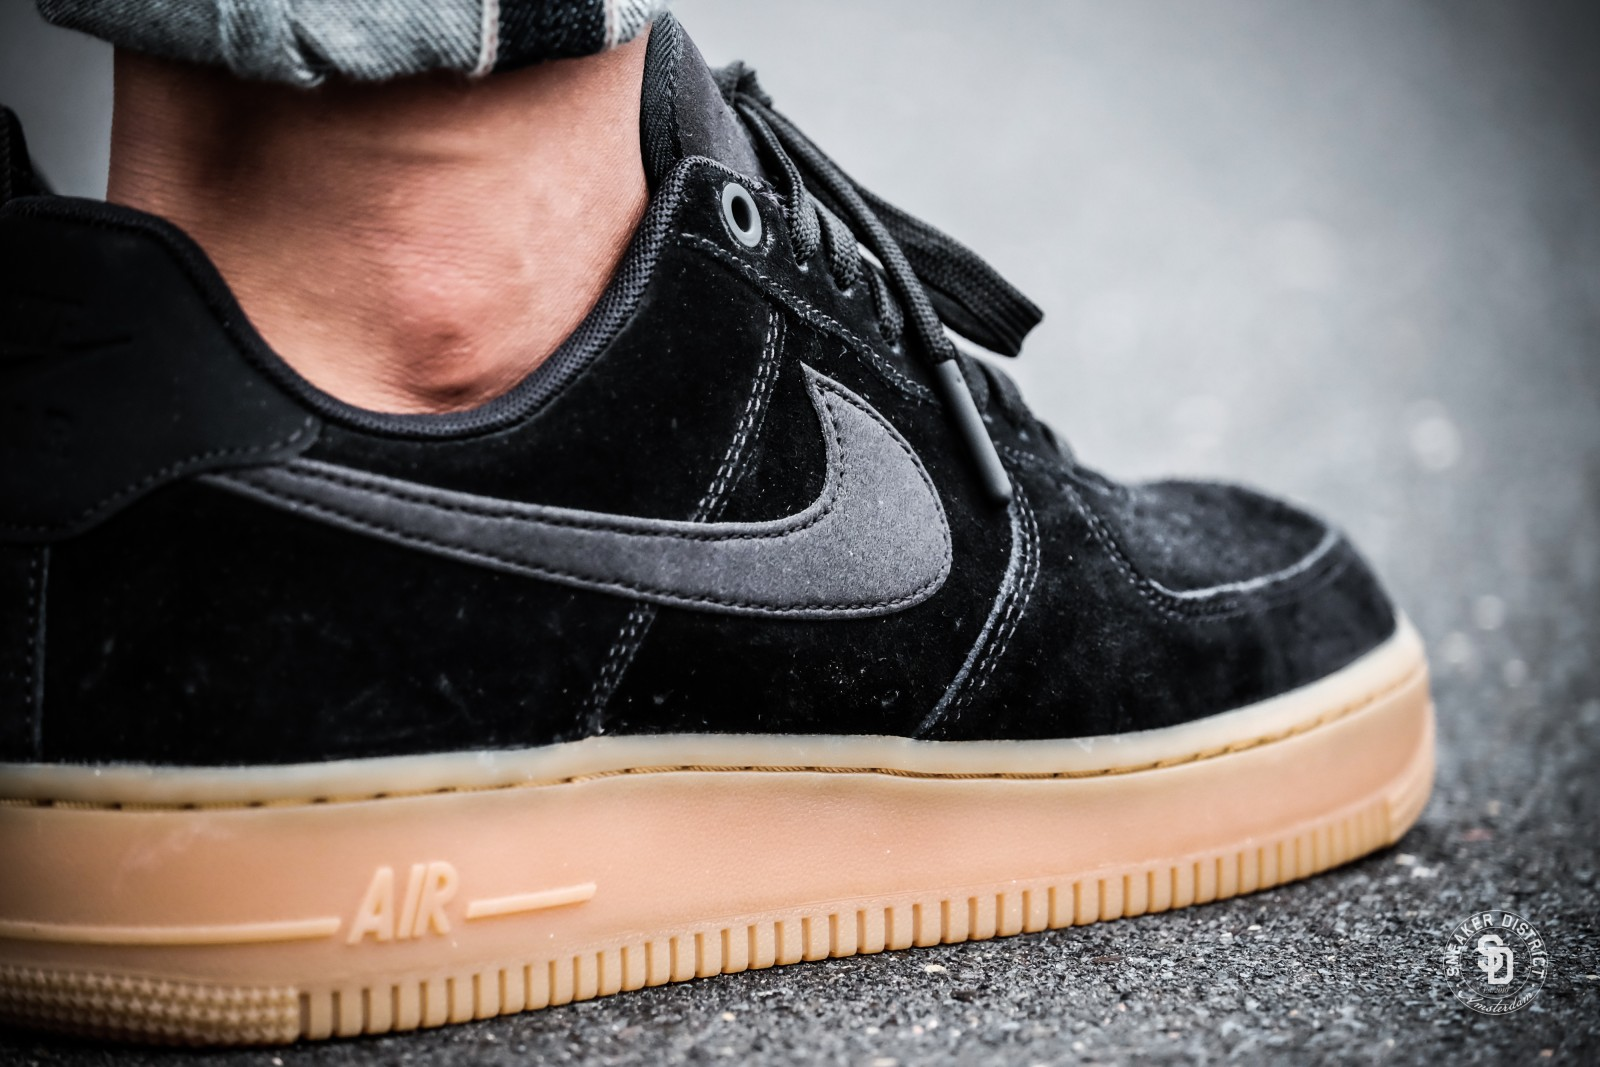 Regulación Noreste Varios  Buy Online nike air force 1 black gum Cheap > OFF70% Discounted